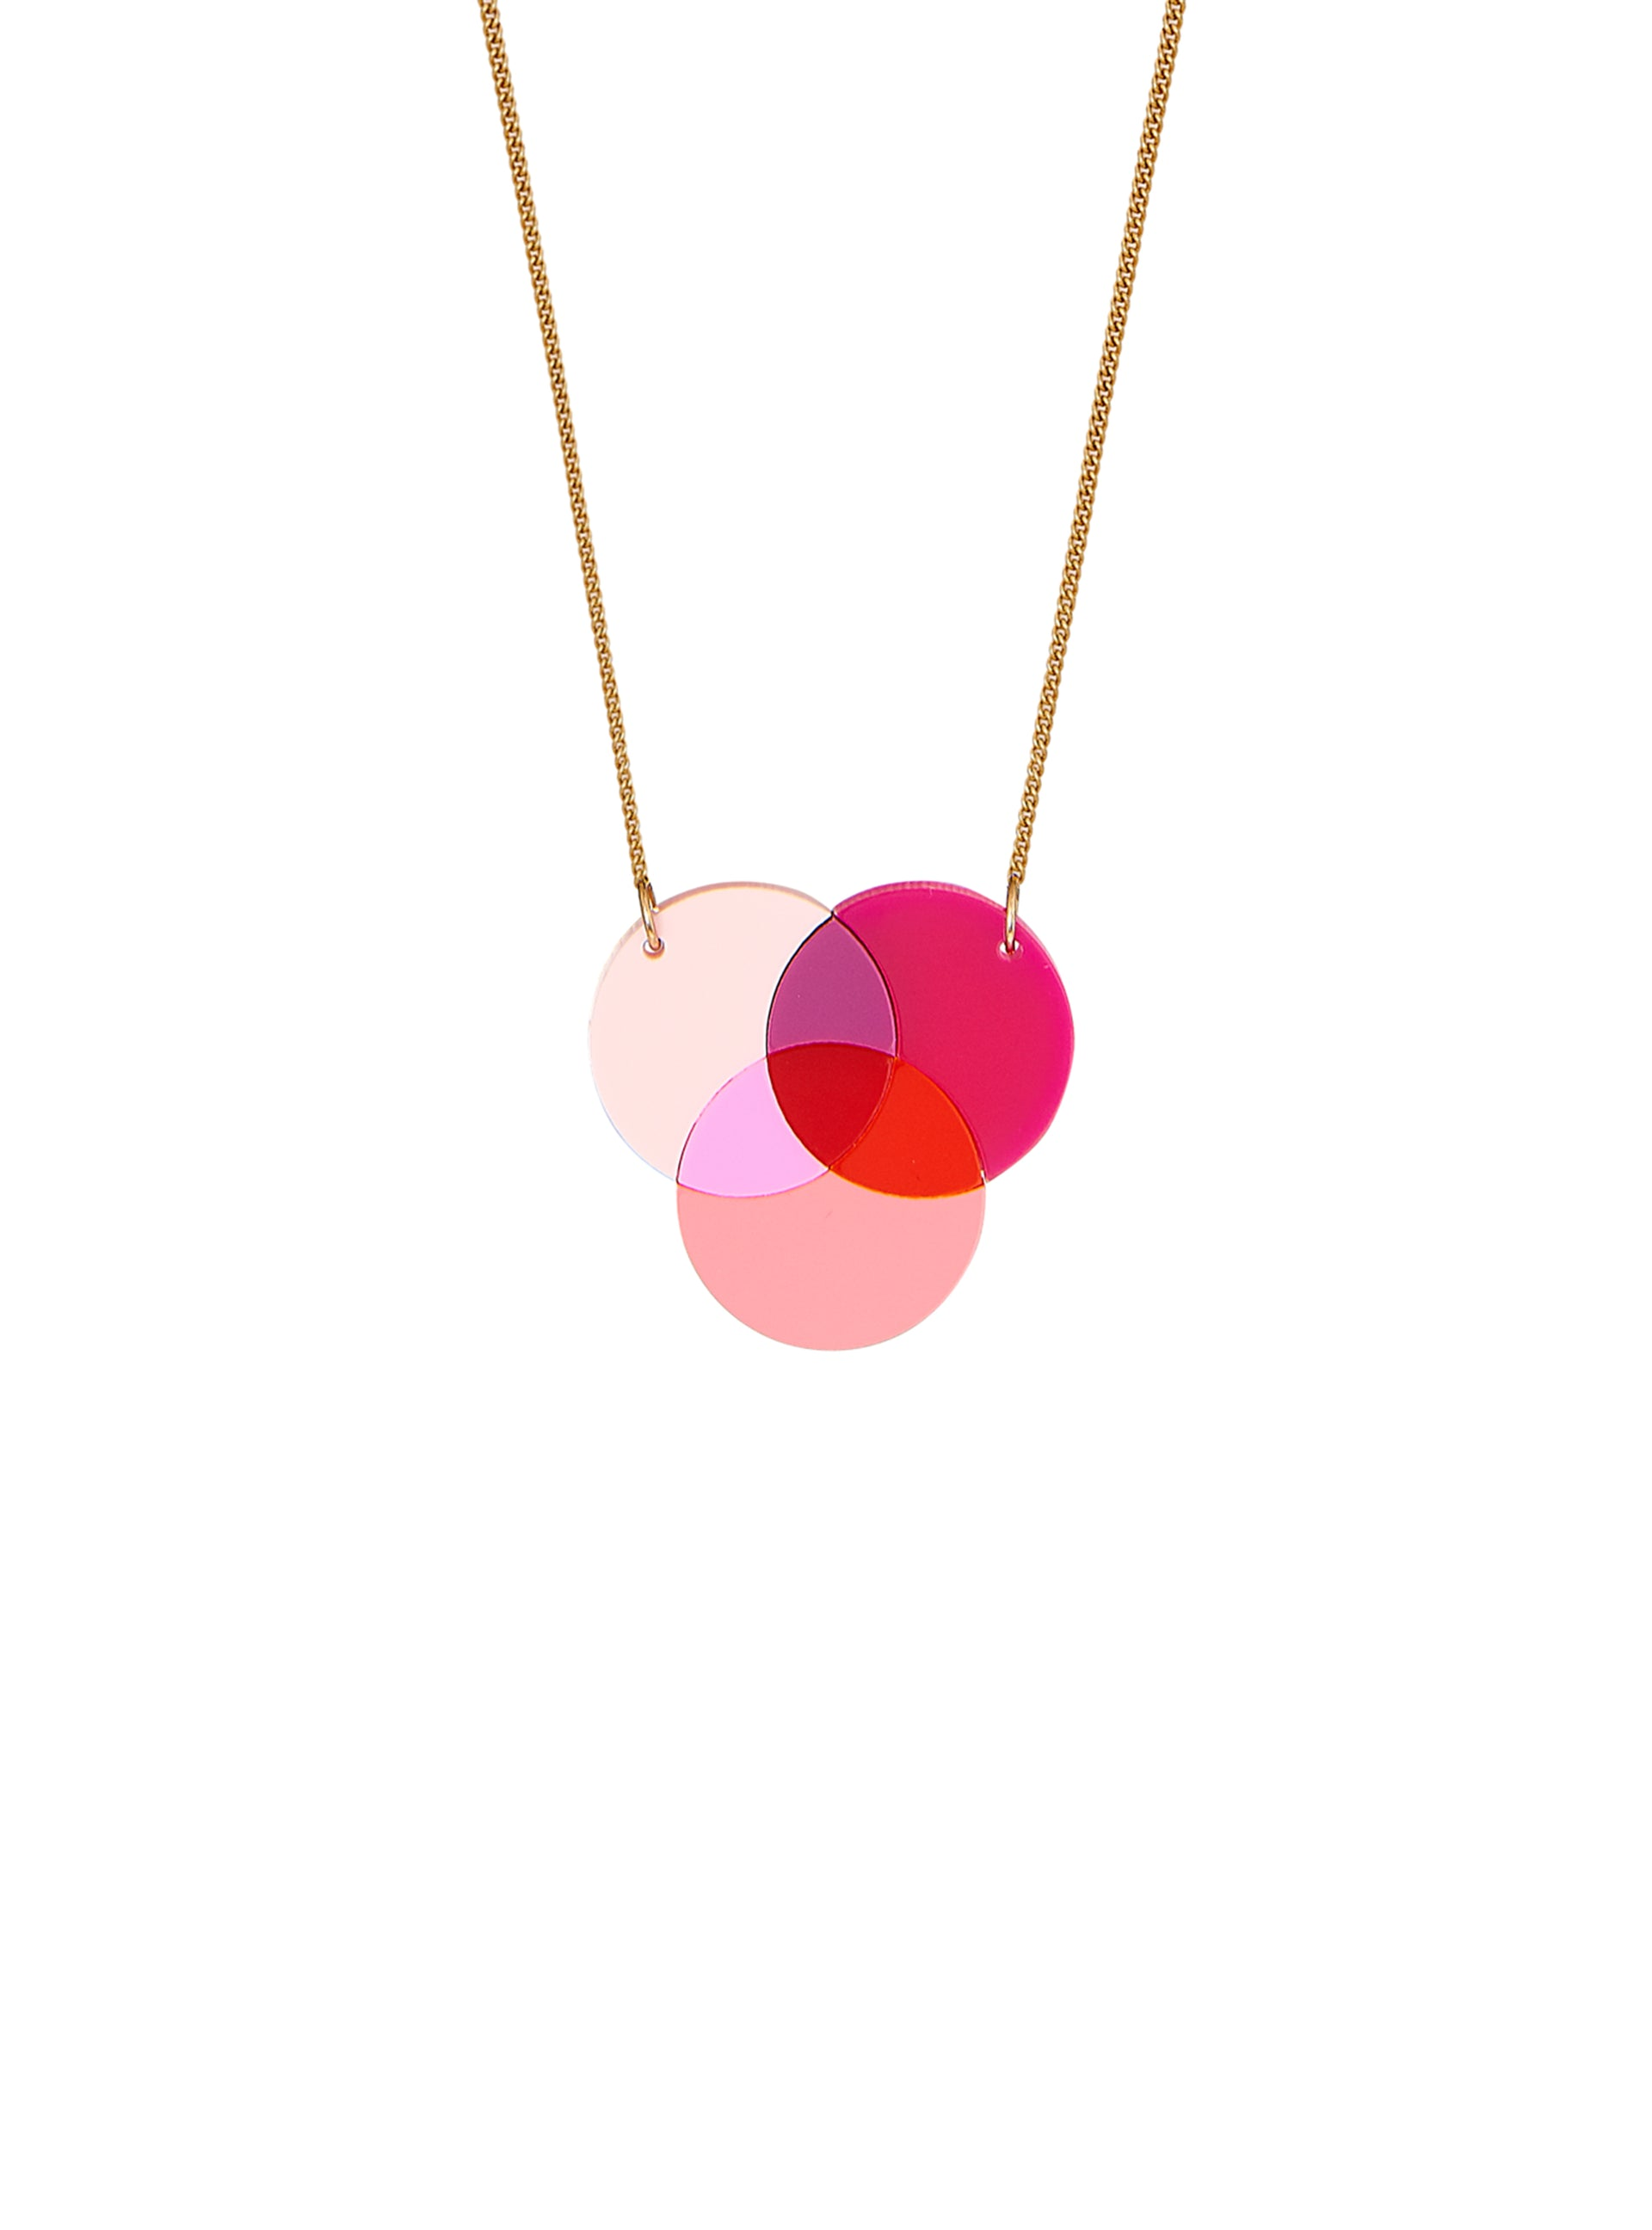 Venn Diagram Small Necklace - Warm